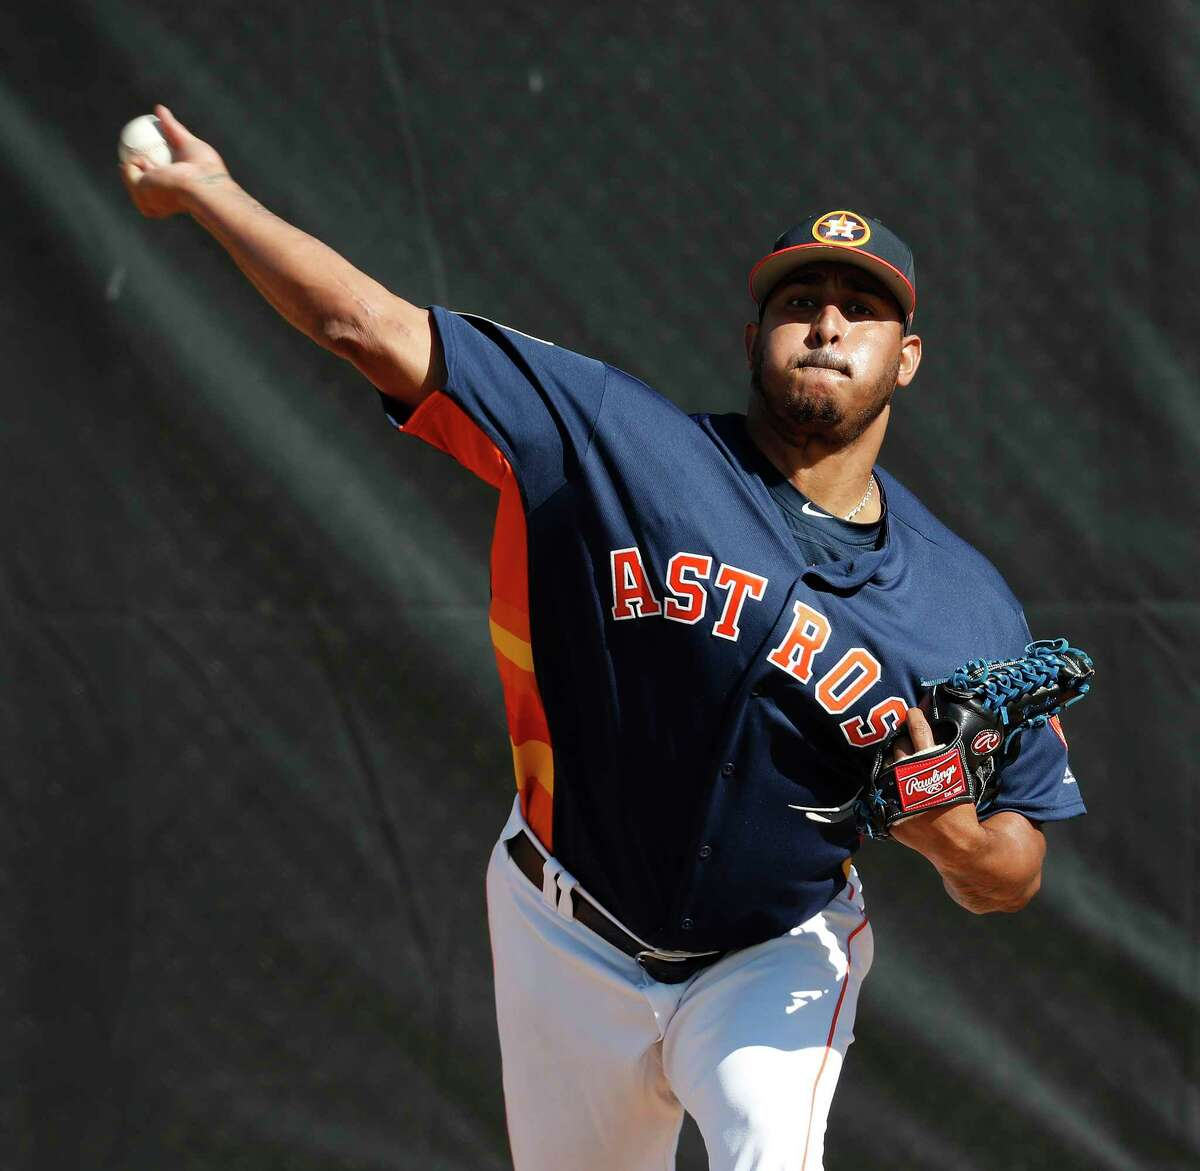 Houston Astros RHP pitcher Hector Rondon (30) pitches a bullpen session as the pitchers and catchers worked out during spring training at The Ballpark of the Palm Beaches, Thursday, Feb. 15, 2018, in West Palm Beach.